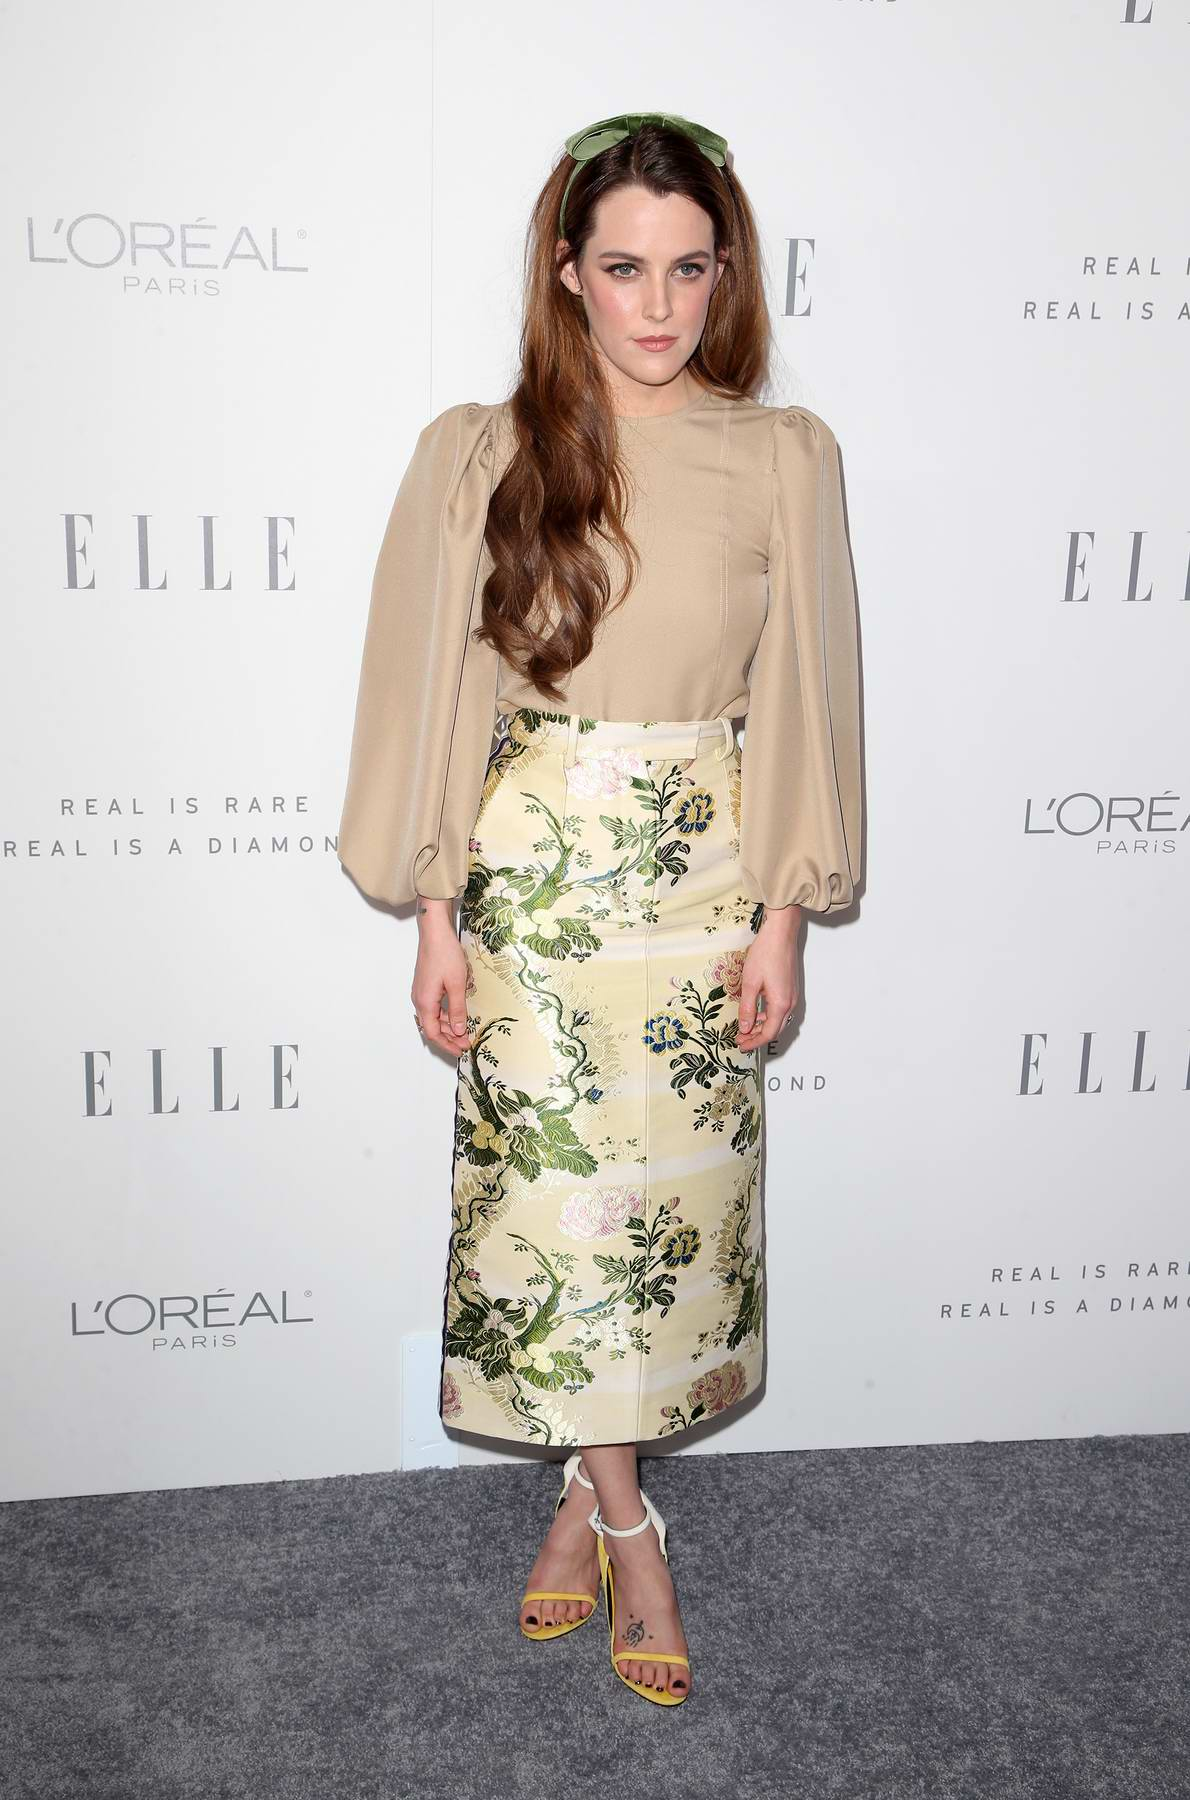 Riley Keough at the Elle's 24th Annual Women in Hollywood Celebration in Los Angeles